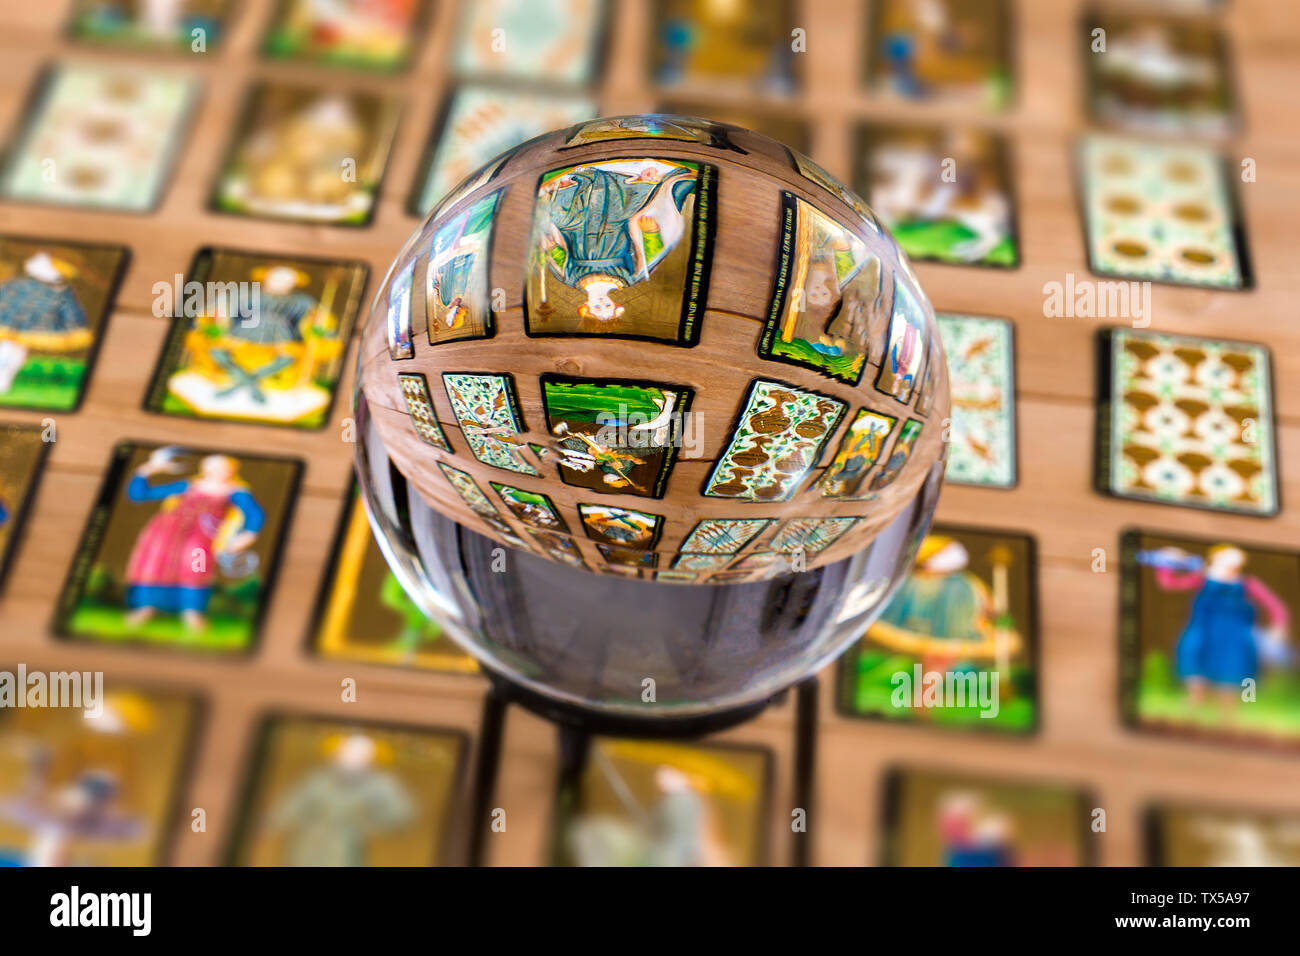 Fortune teller Crystal ball and in transparency tarot cards background . - Stock Image